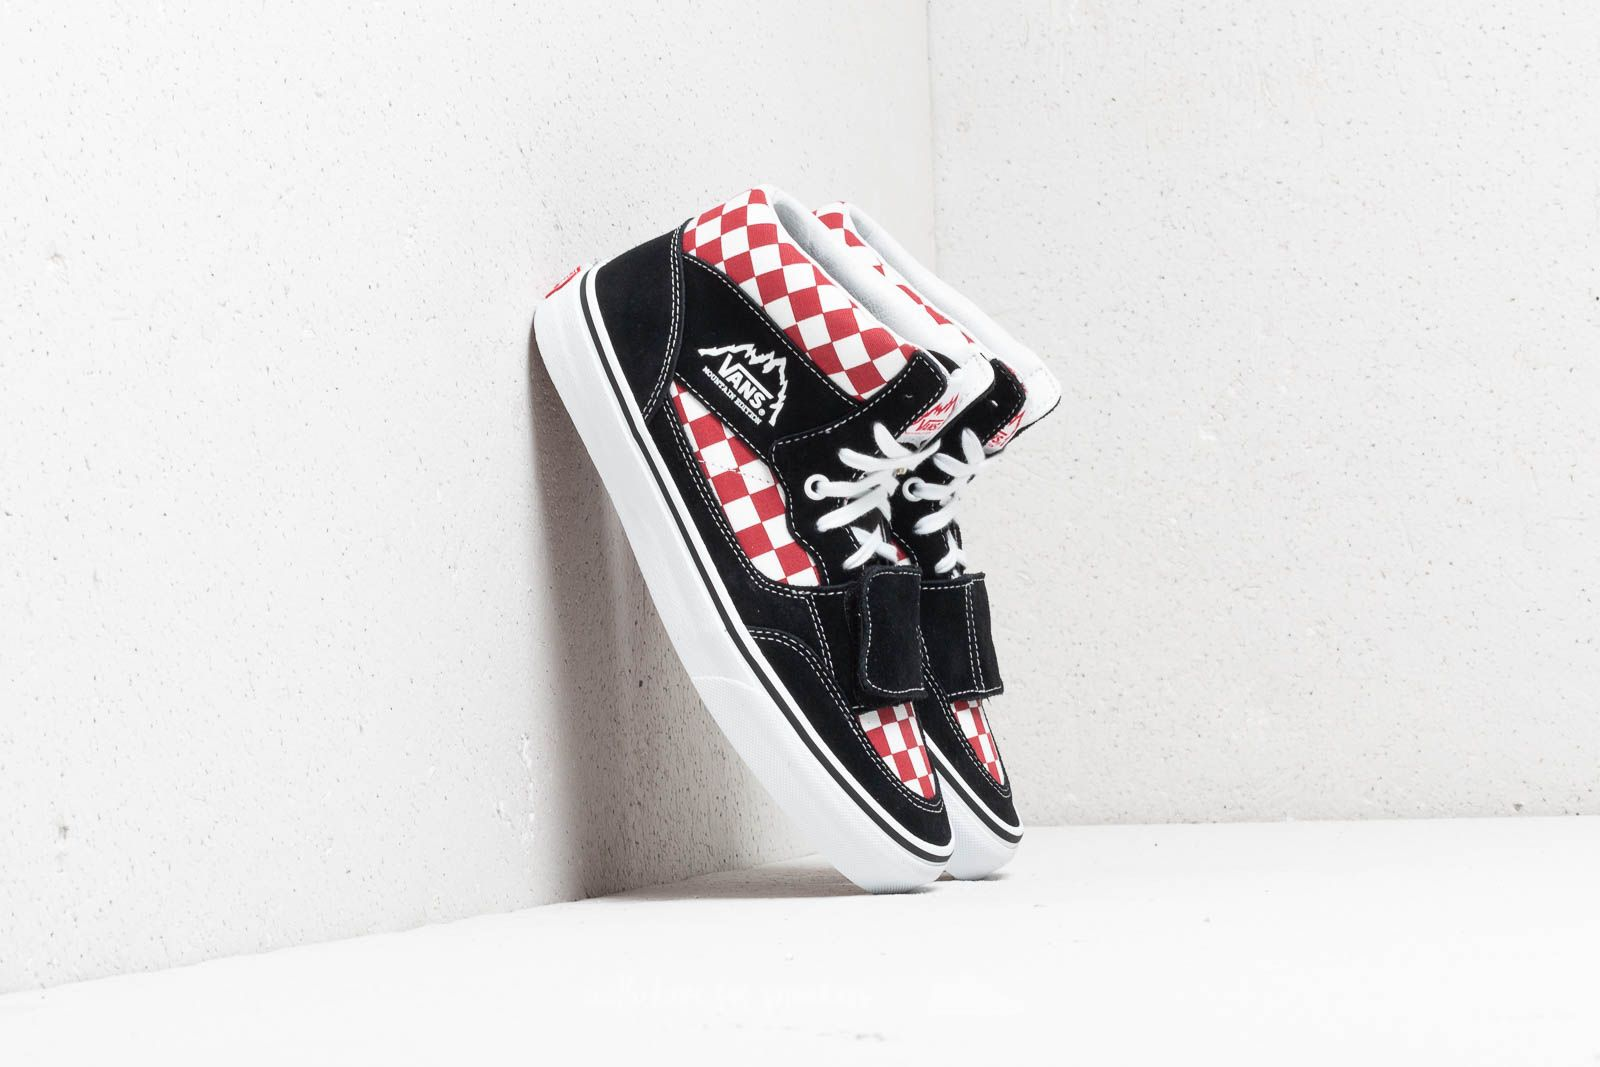 Vans Mountain Edition (Checkerboard)